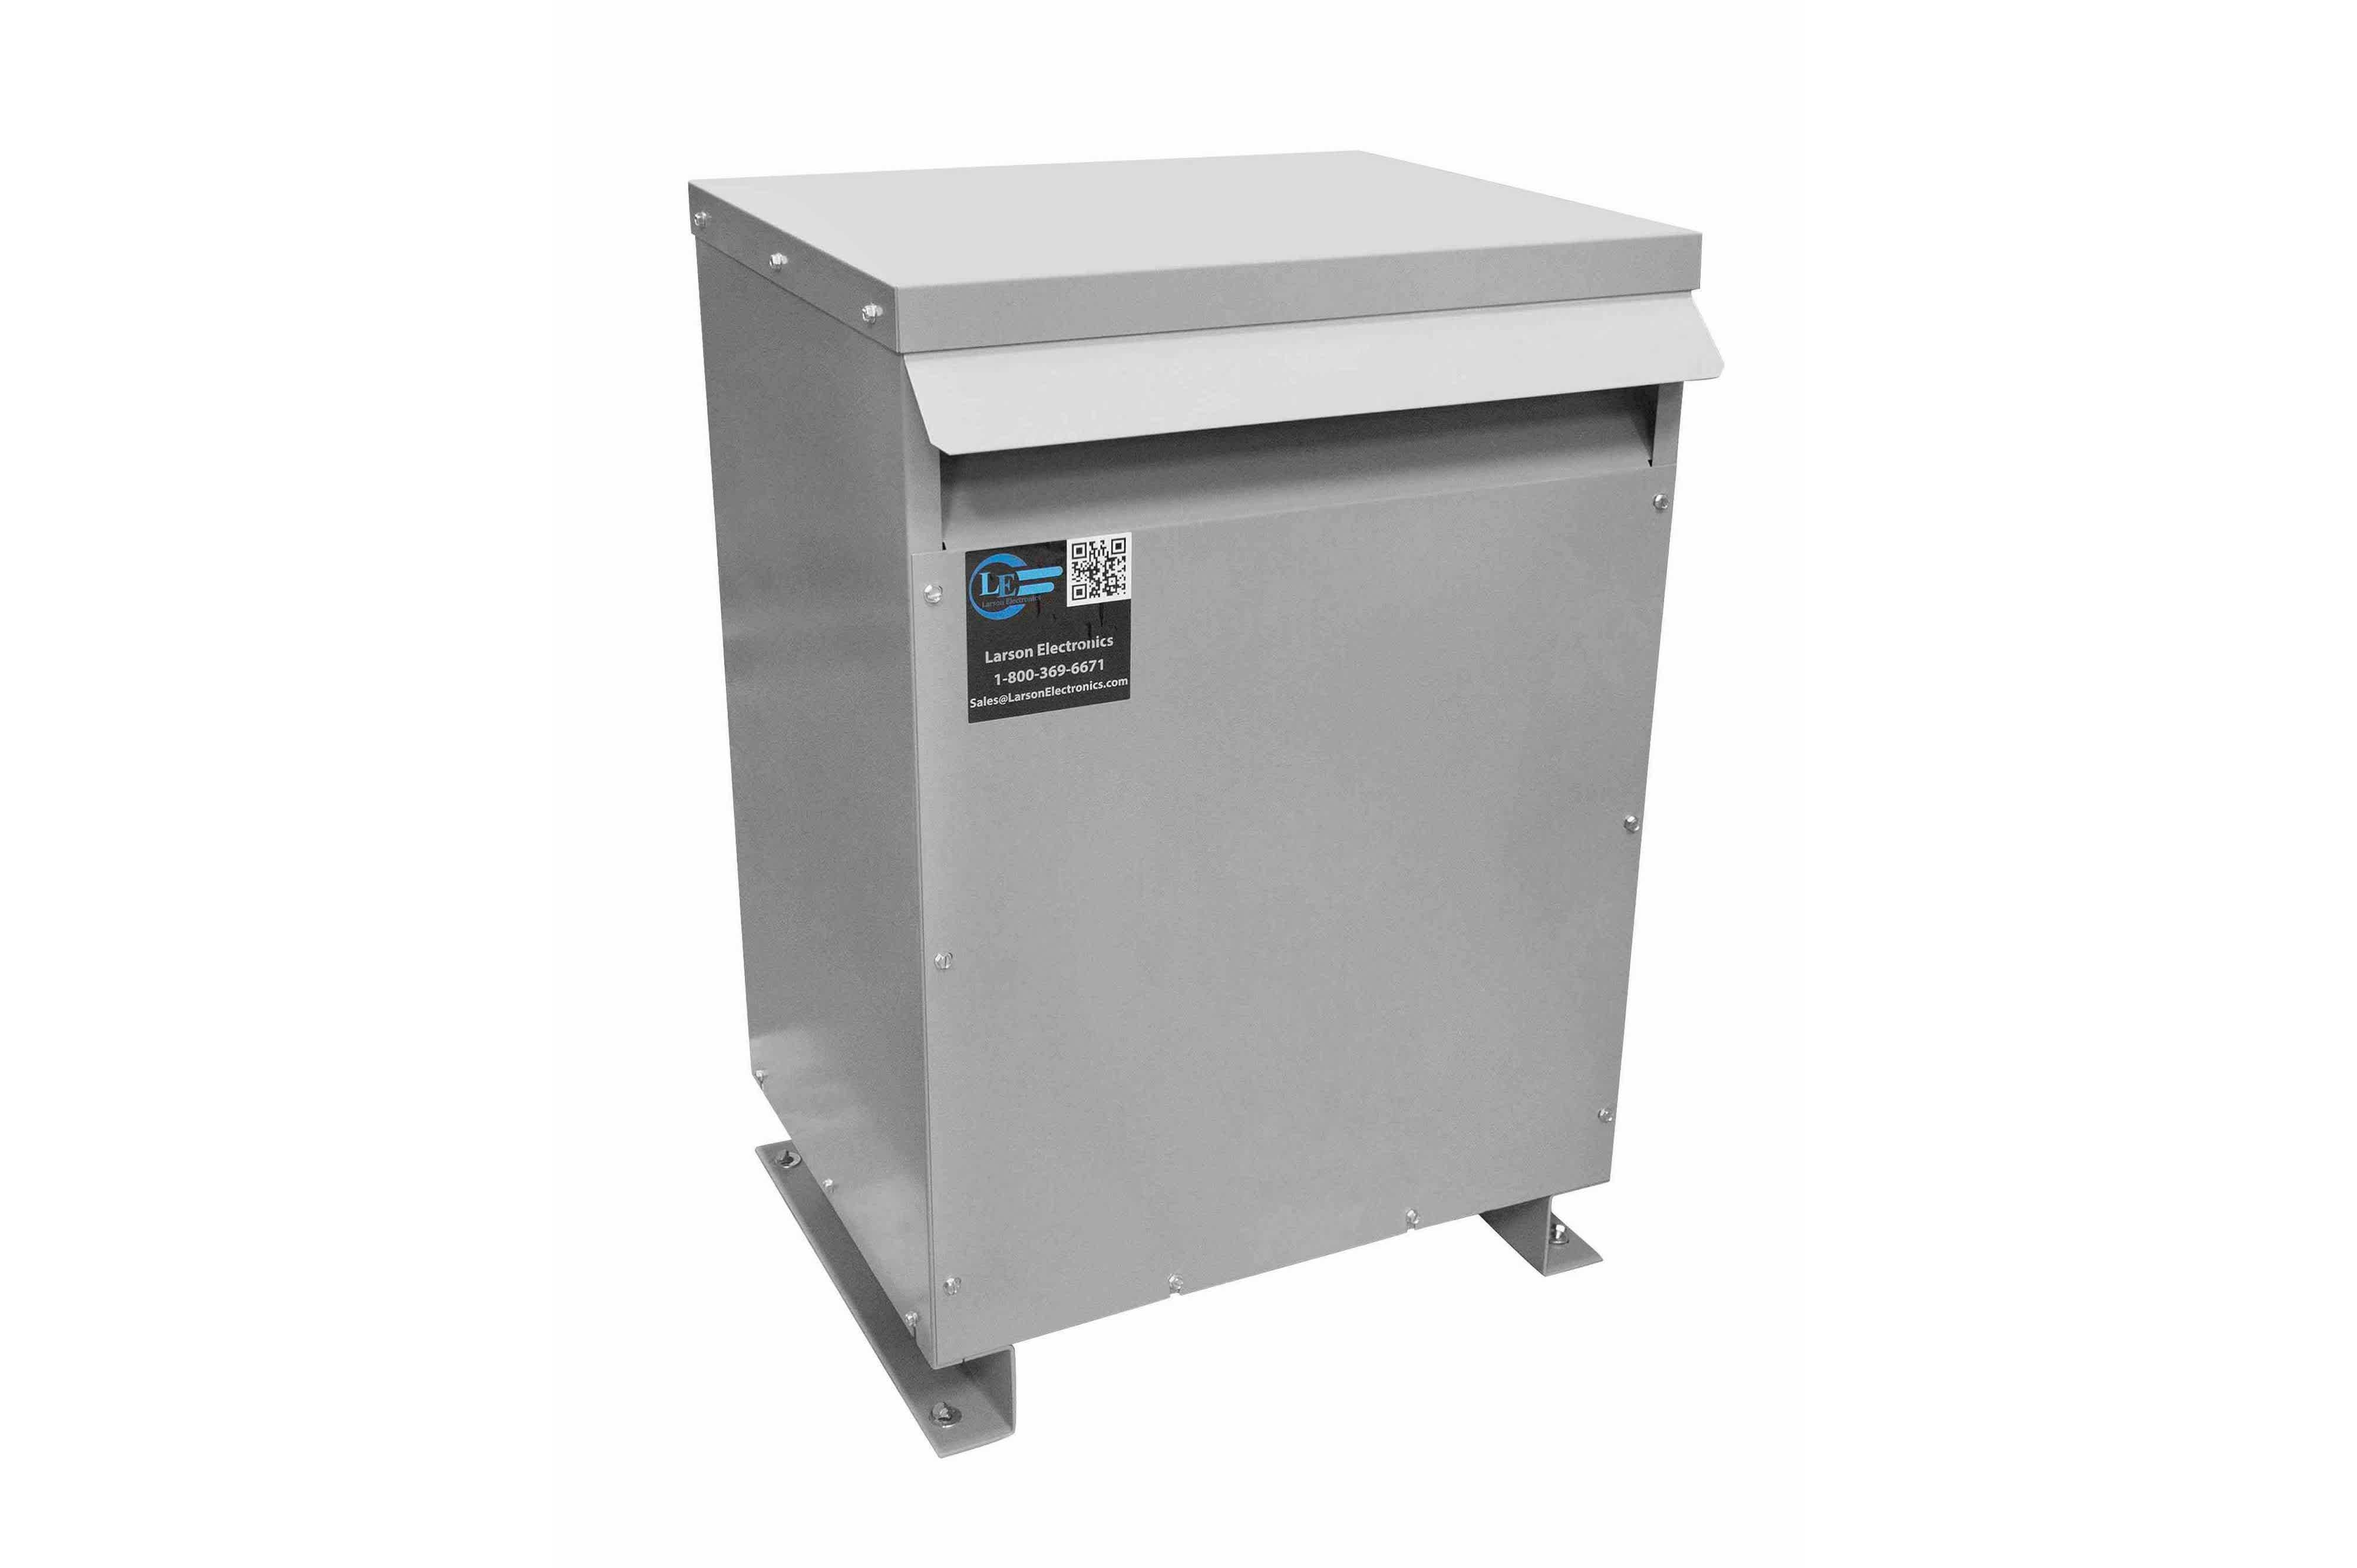 35 kVA 3PH Isolation Transformer, 480V Delta Primary, 415V Delta Secondary, N3R, Ventilated, 60 Hz